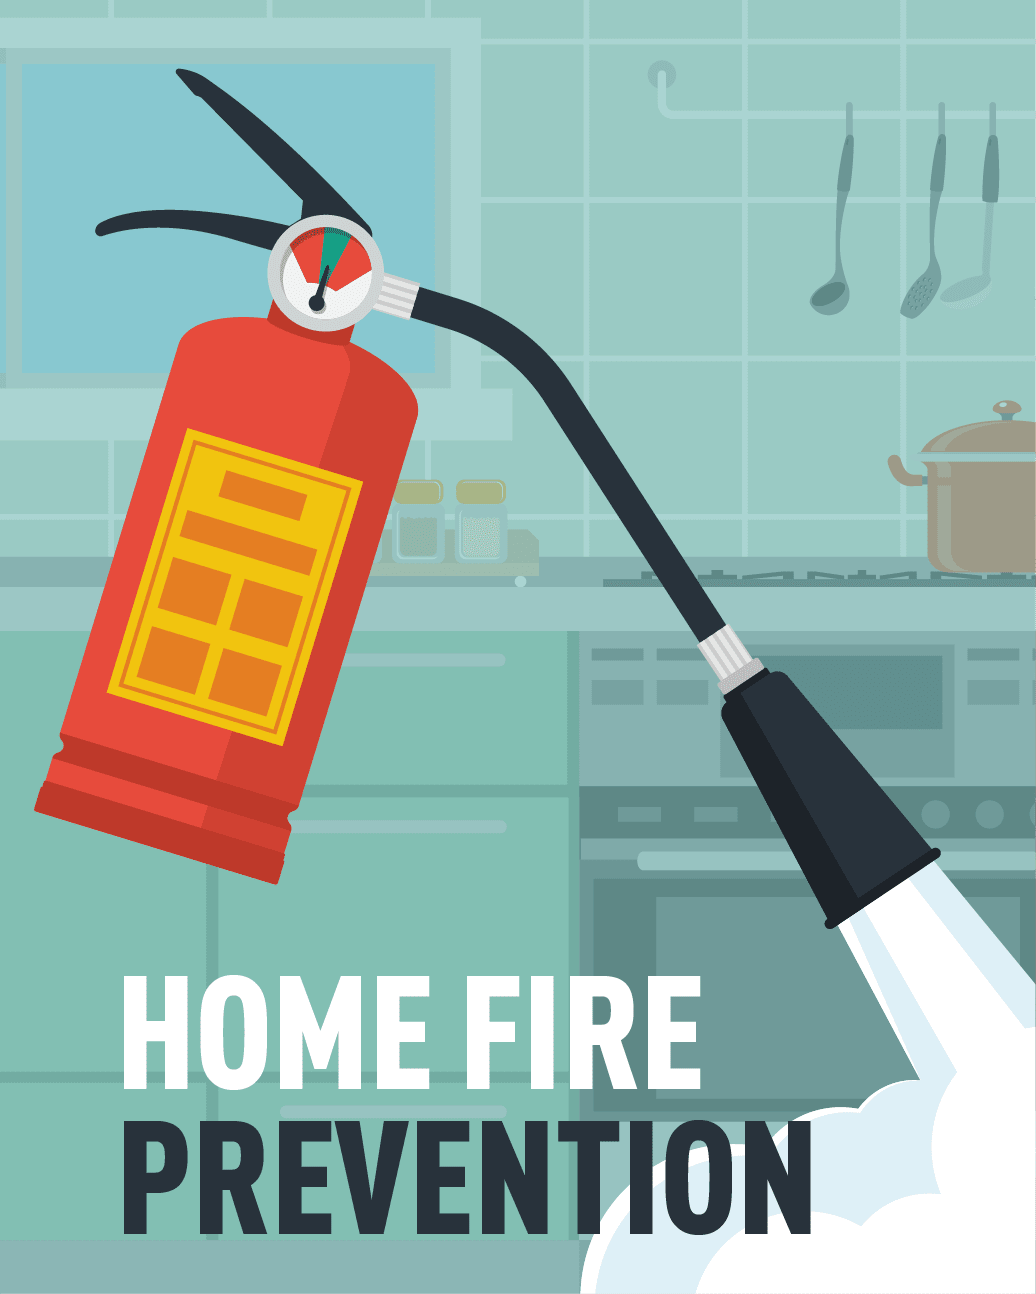 Graphic of fire extinguisher